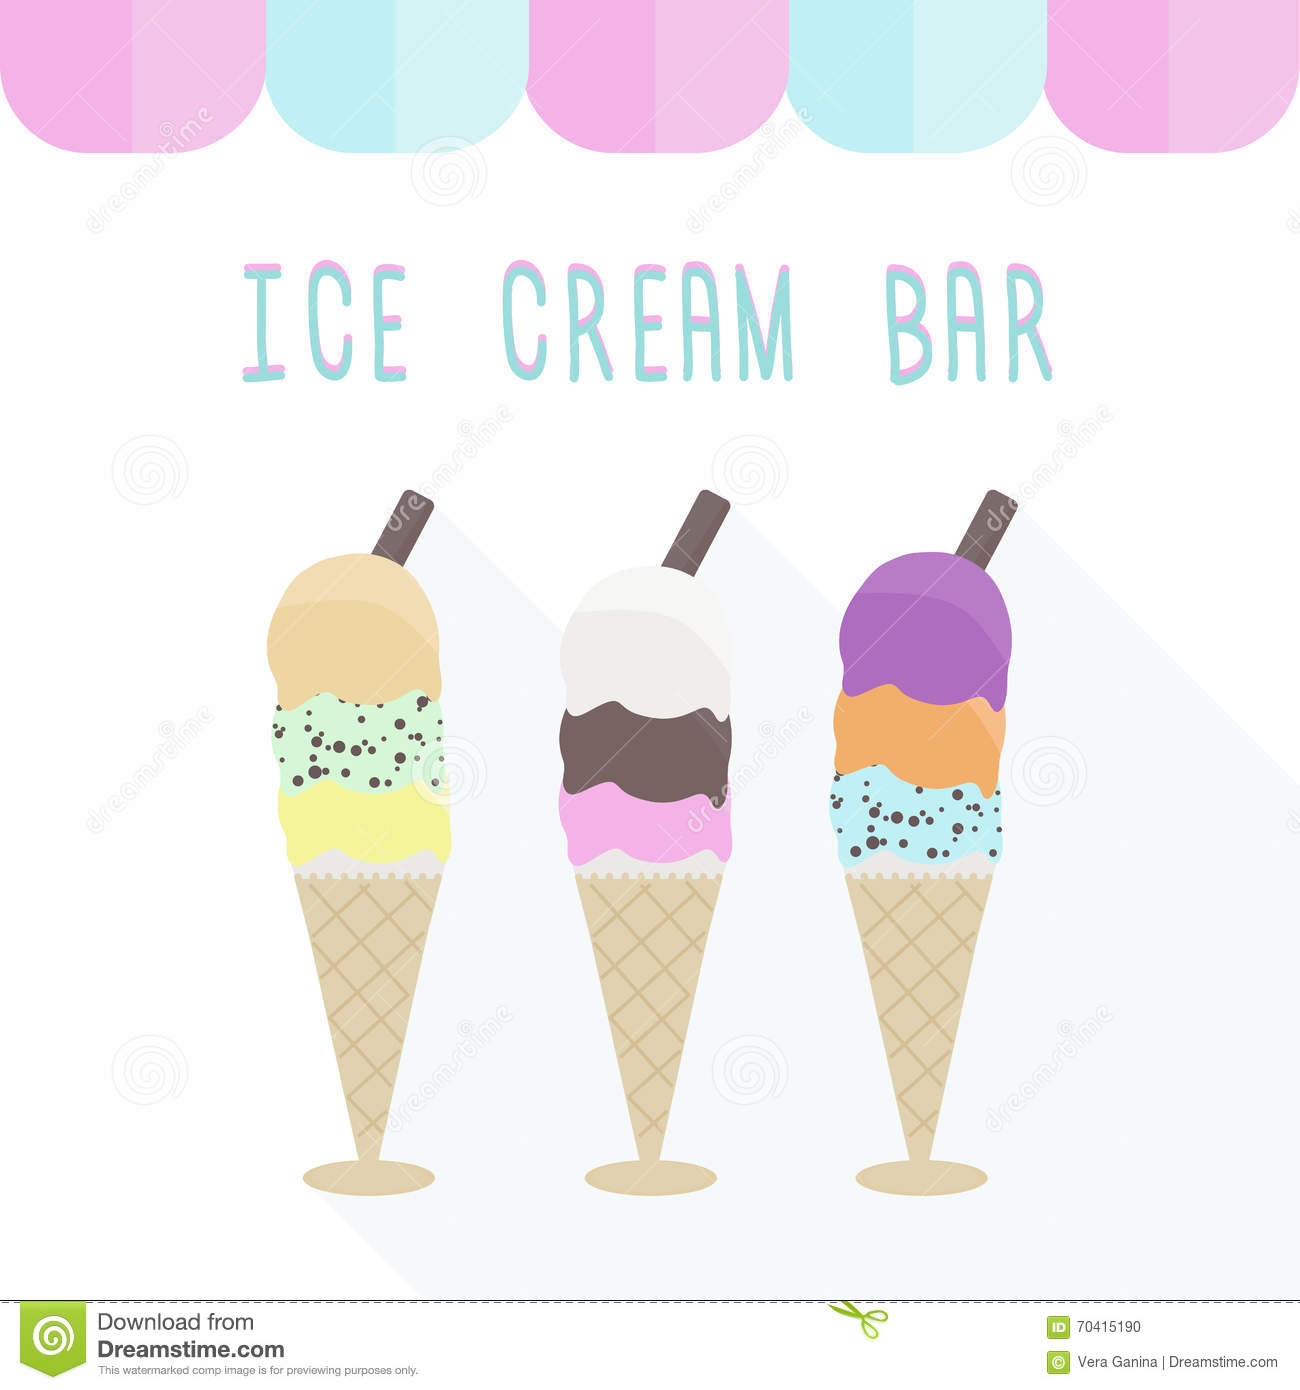 Pistachio Ice Cream Wallpapers High Quality: Neapolitan Ice Cream. 3 Scoops In One Cone, 9 Flavors